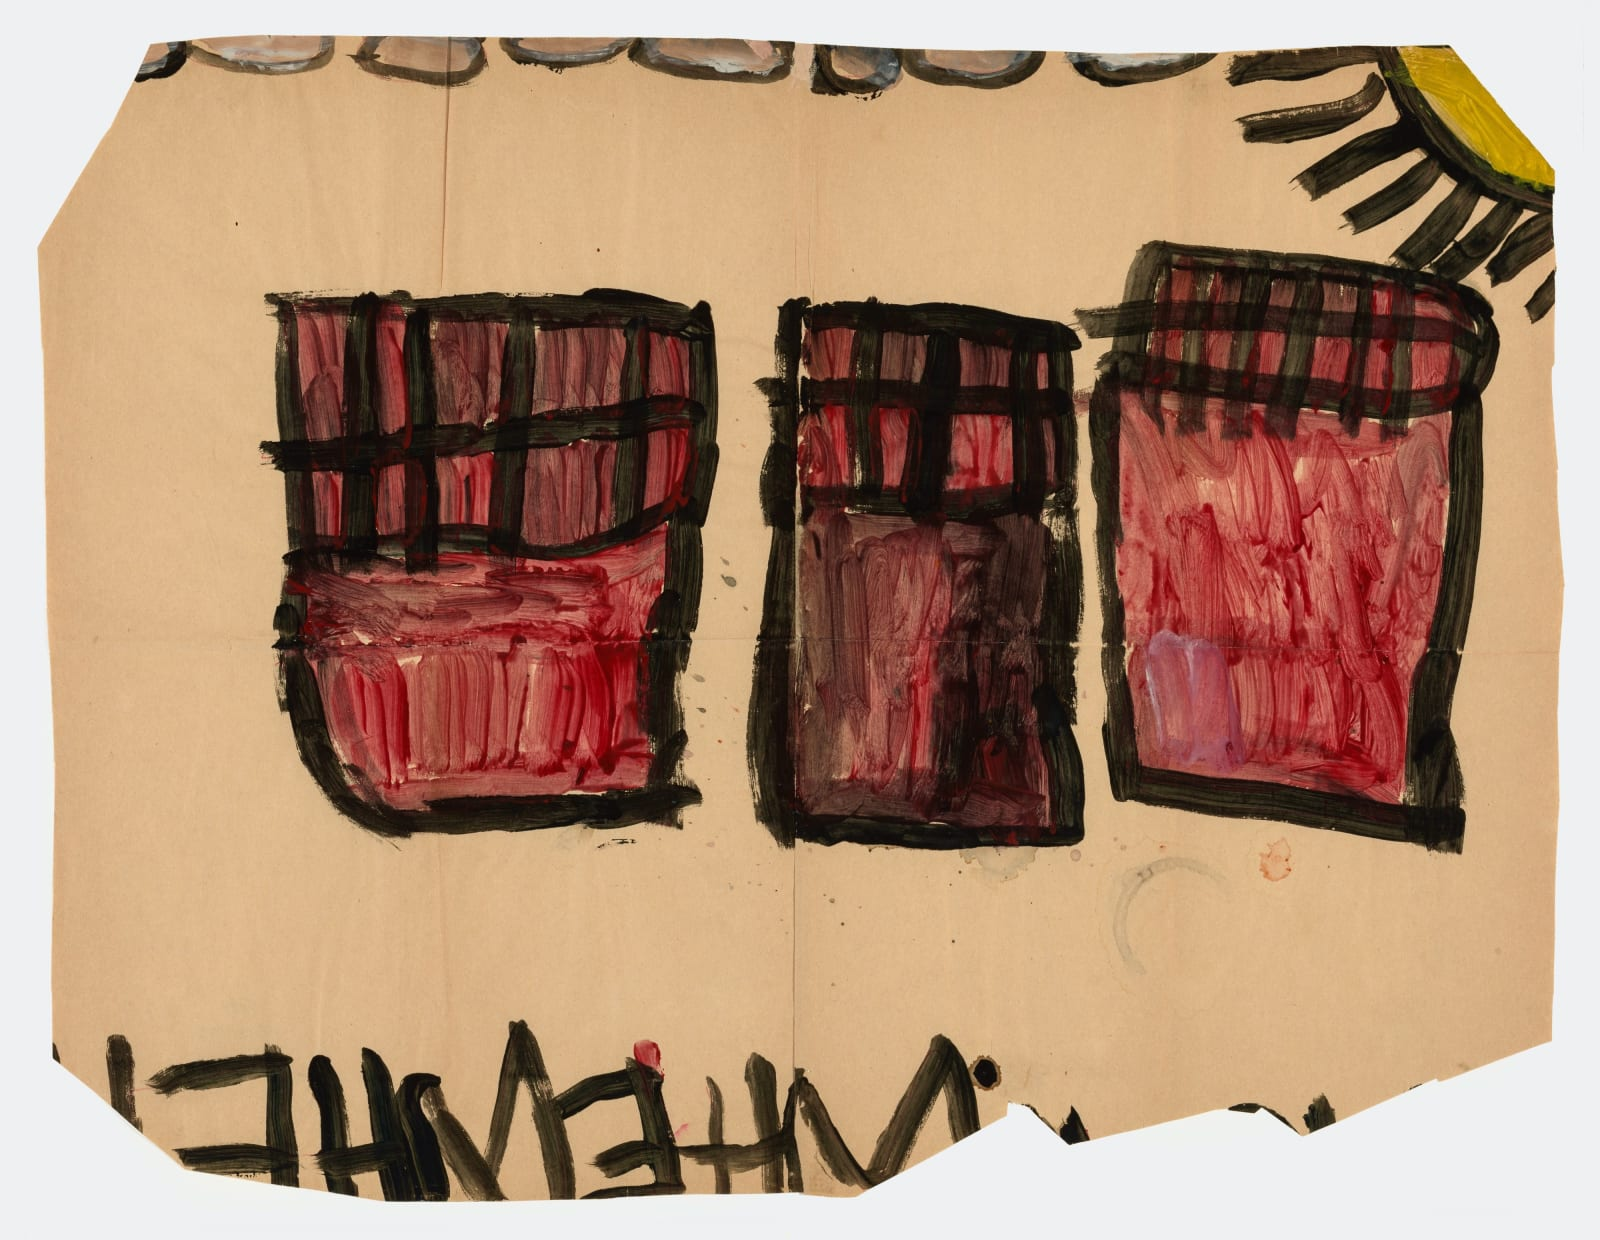 Untitled, 1972-1980 Tempera on paper 21.5 x 28.5 in (54.6 x 72.4 cm) (LM 2)